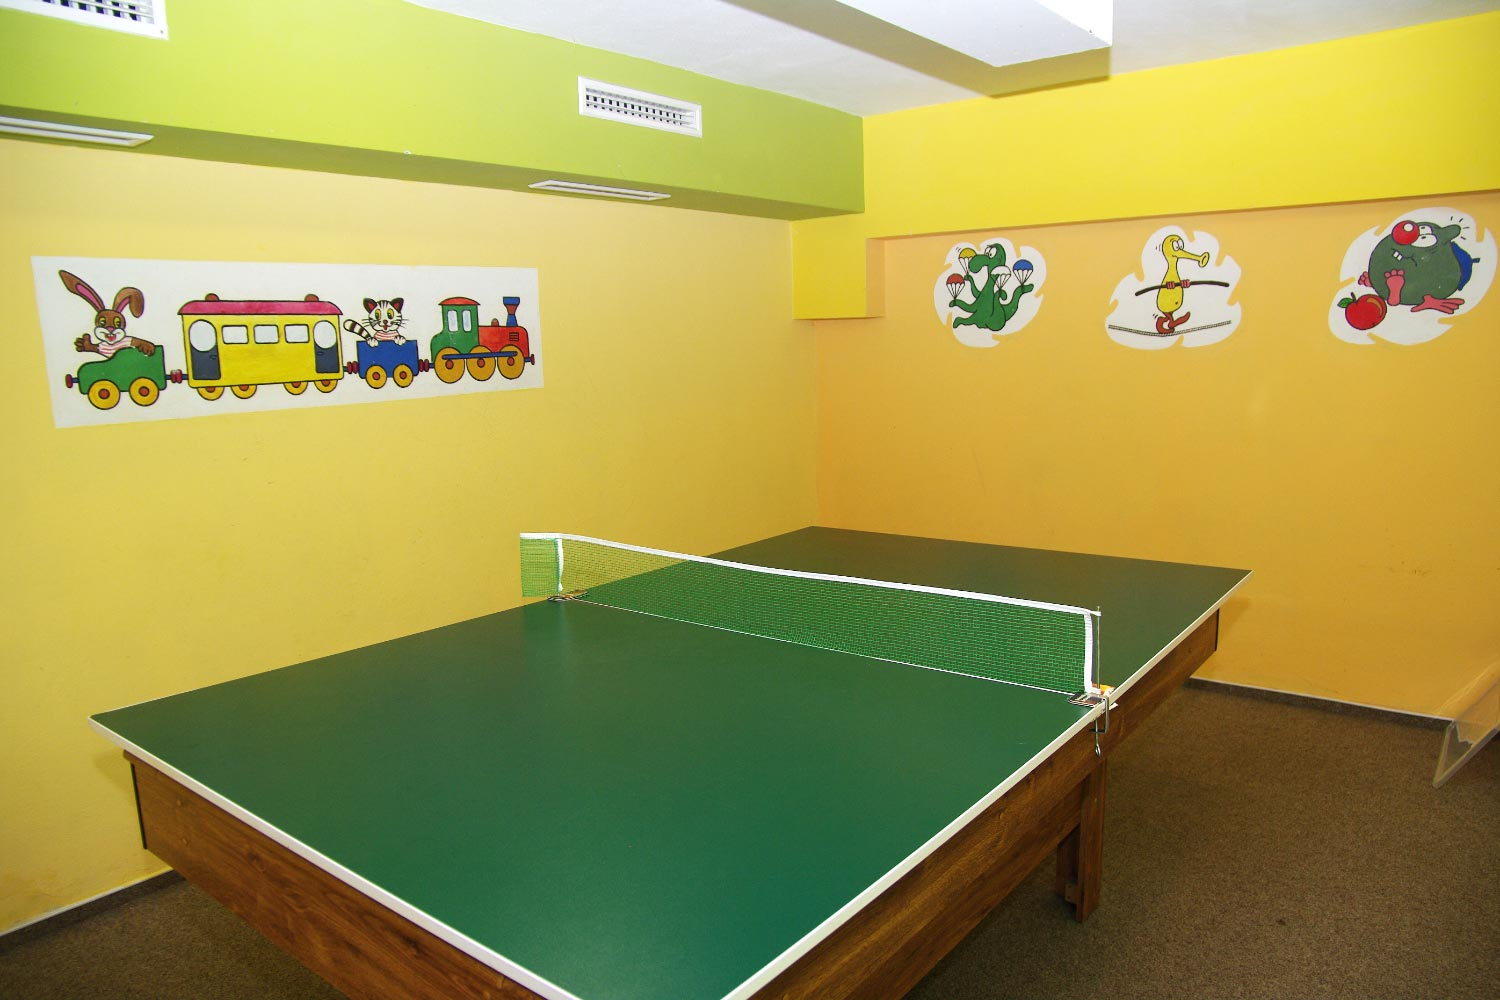 Table tennis services